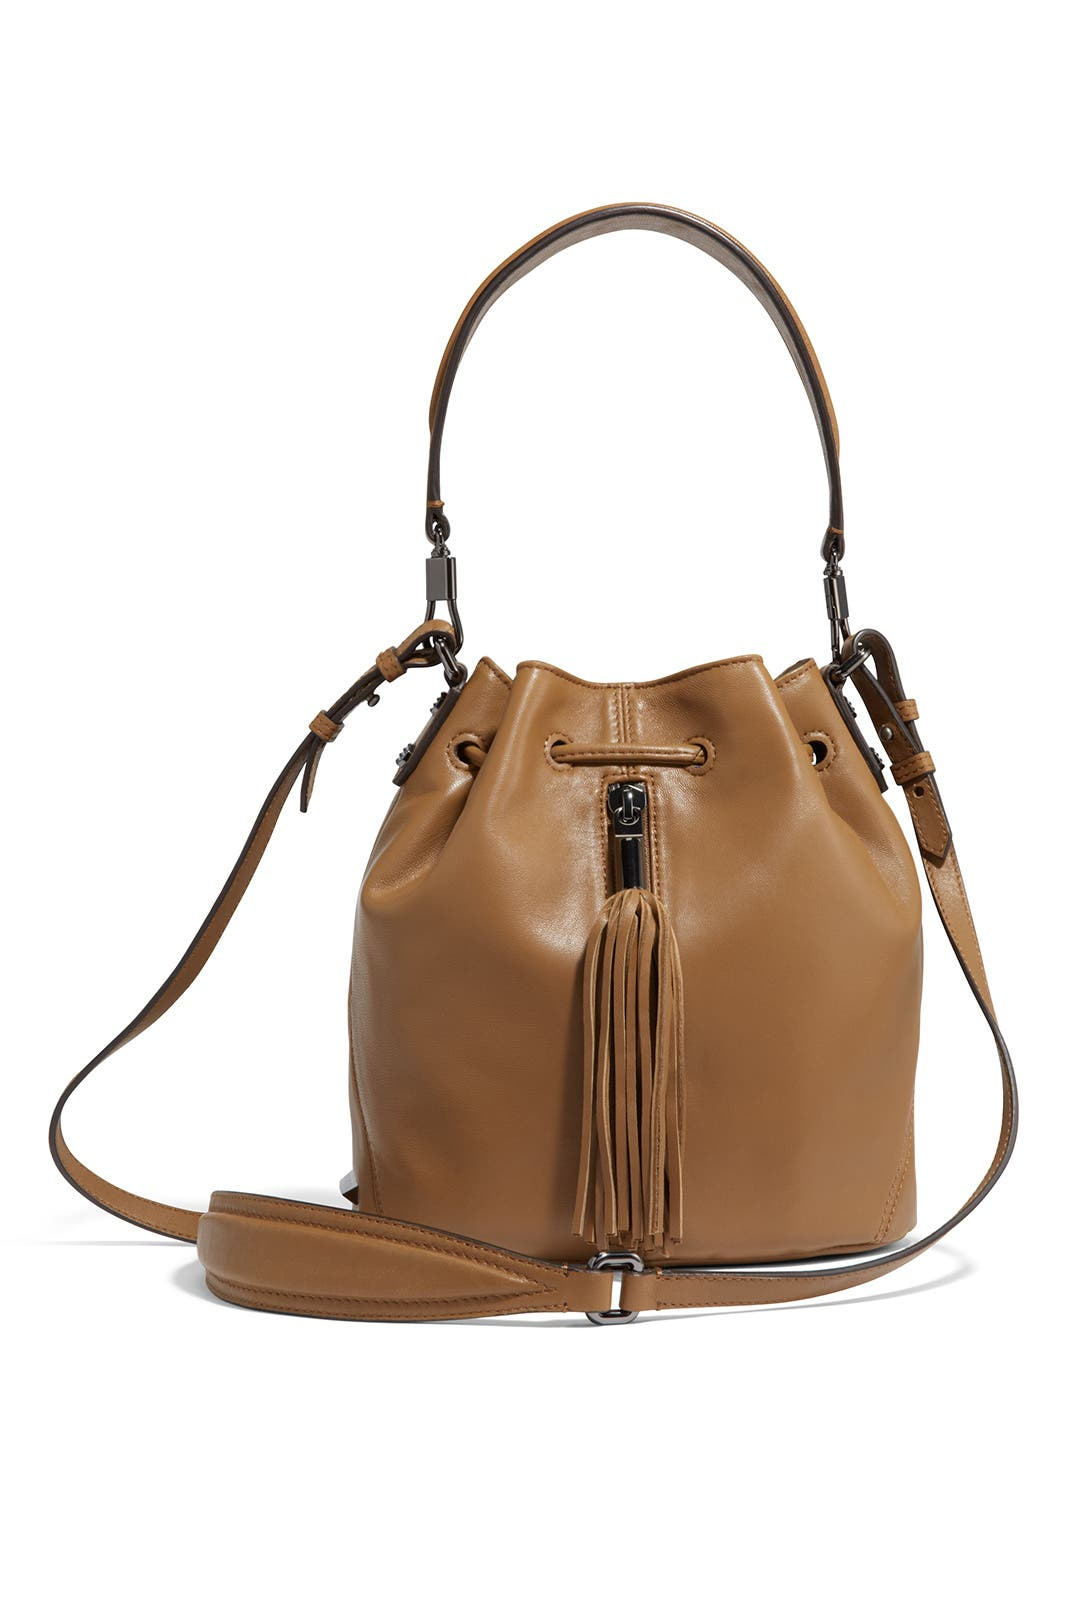 Cynnie Coco Bucket Bag by Elizabeth and James Accessories